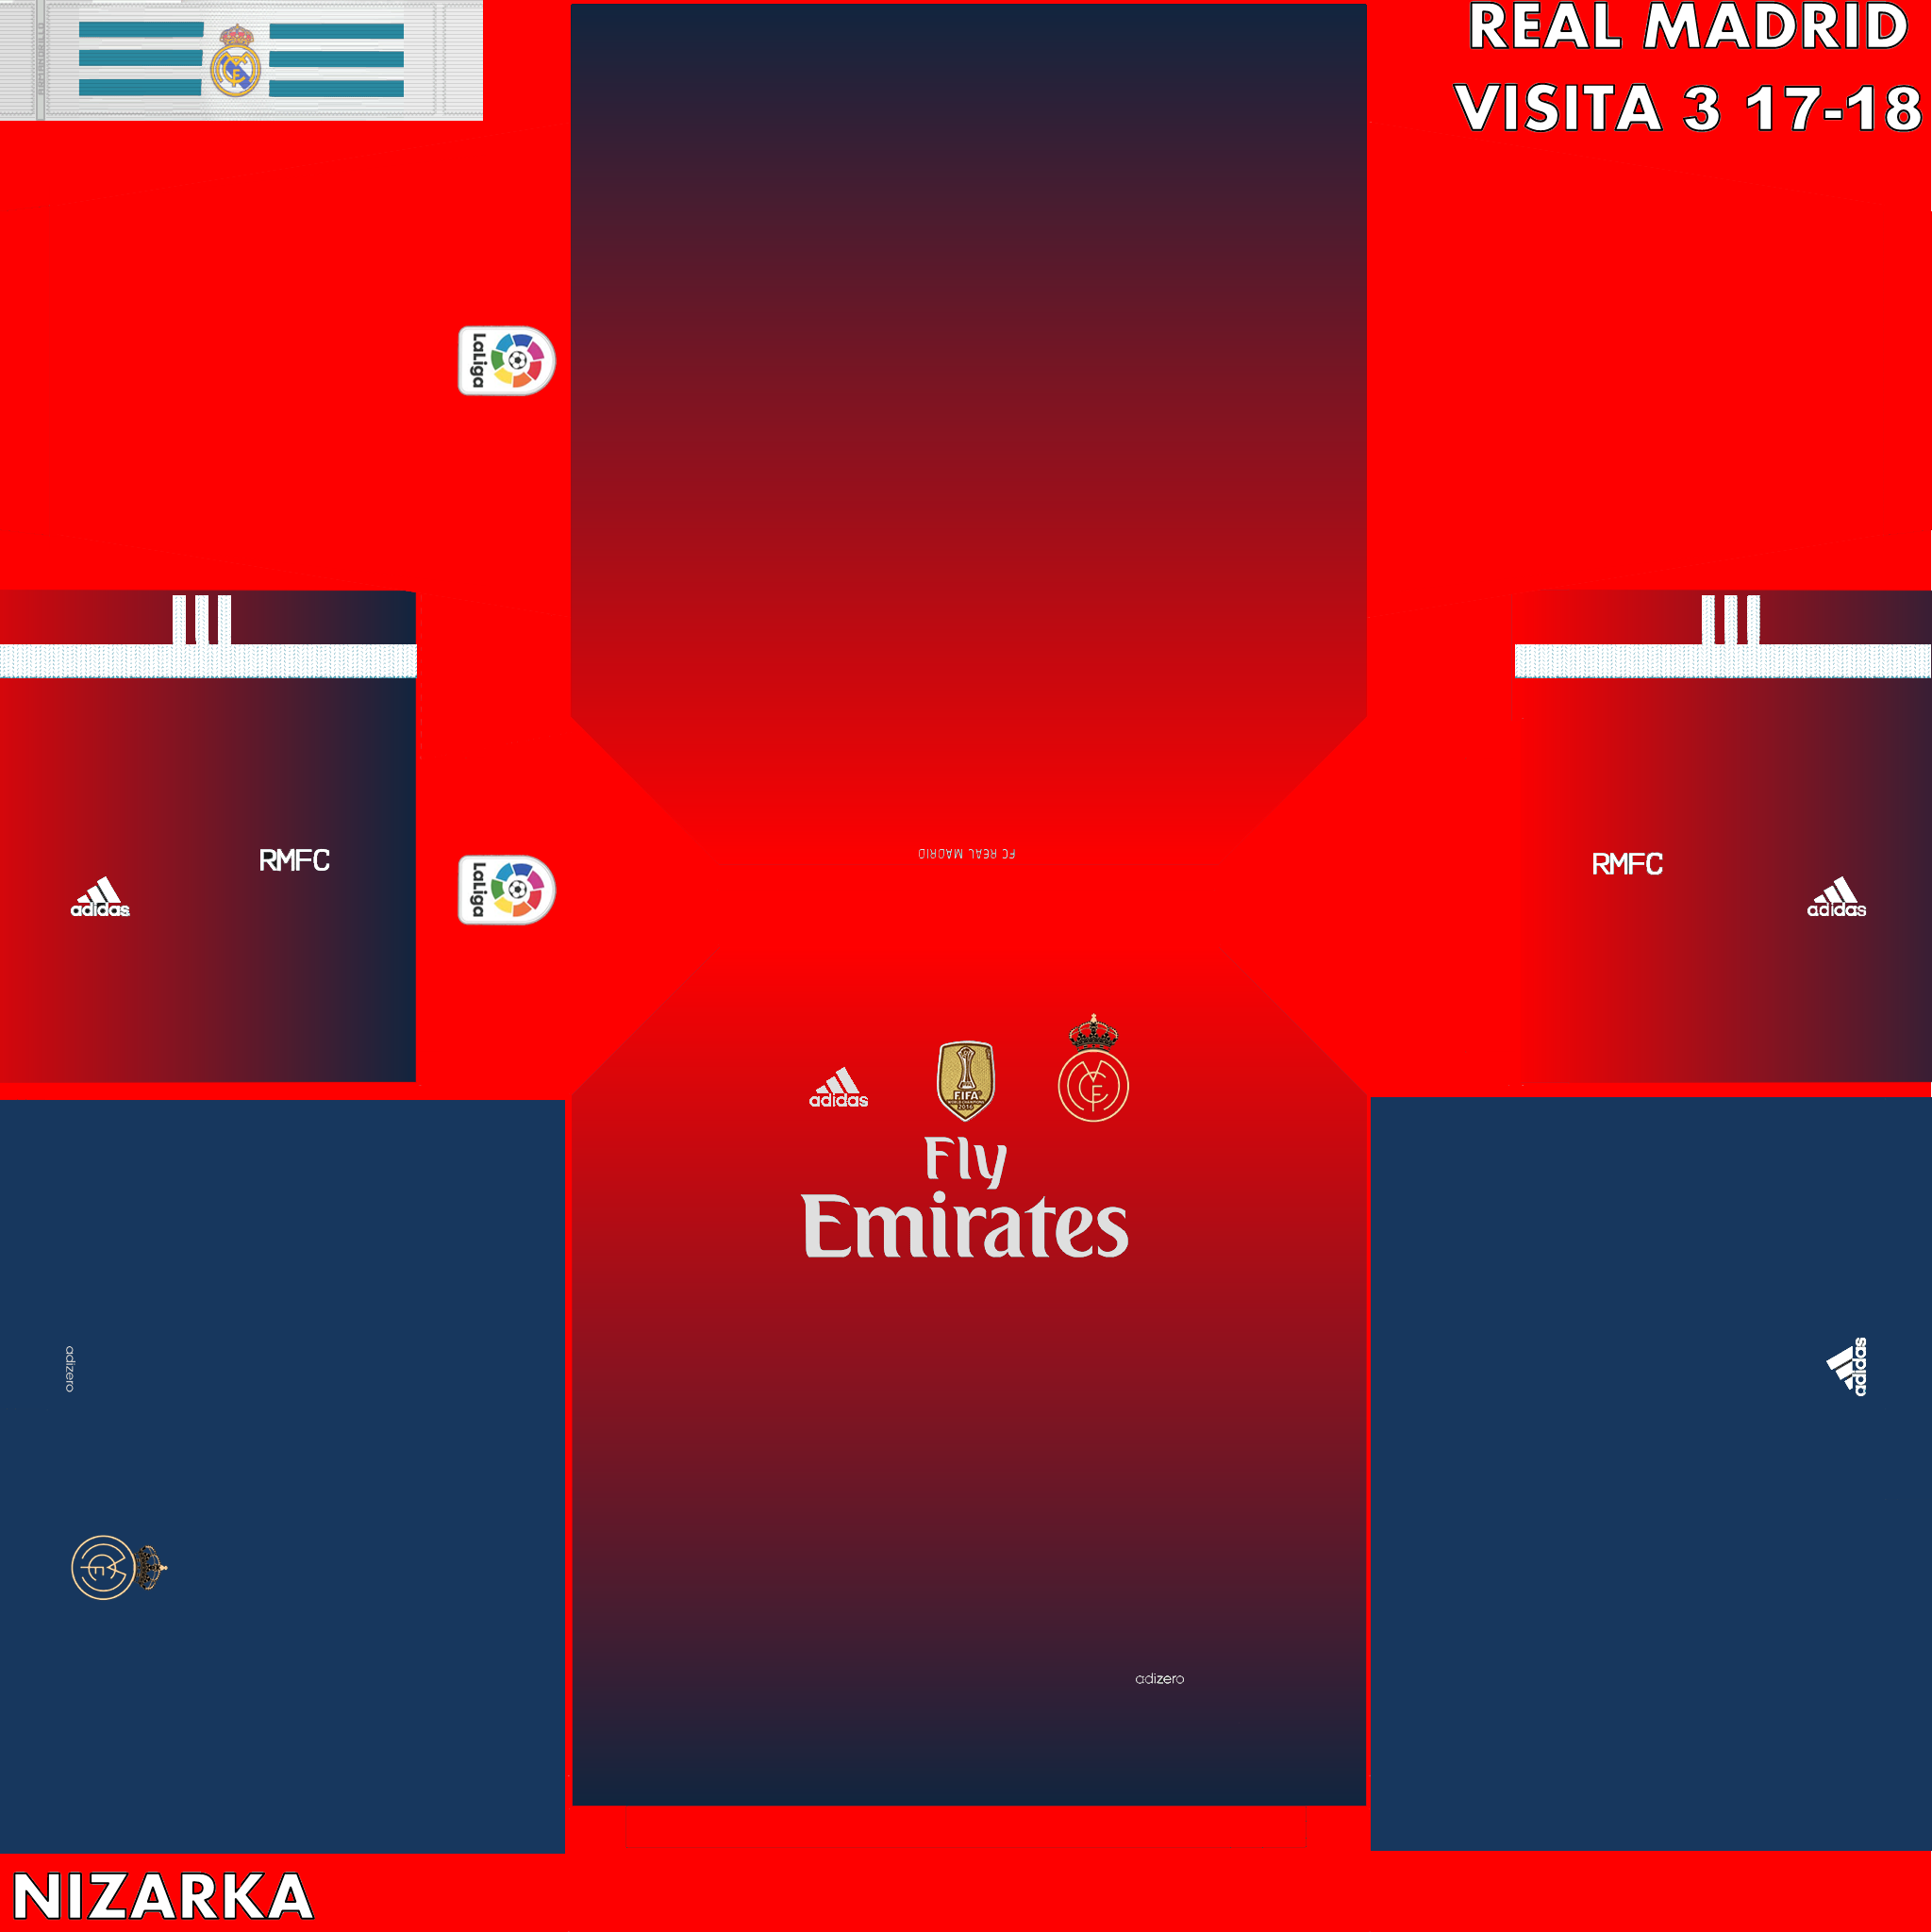 Real Madrid 2048 X 2048 Pes Visita